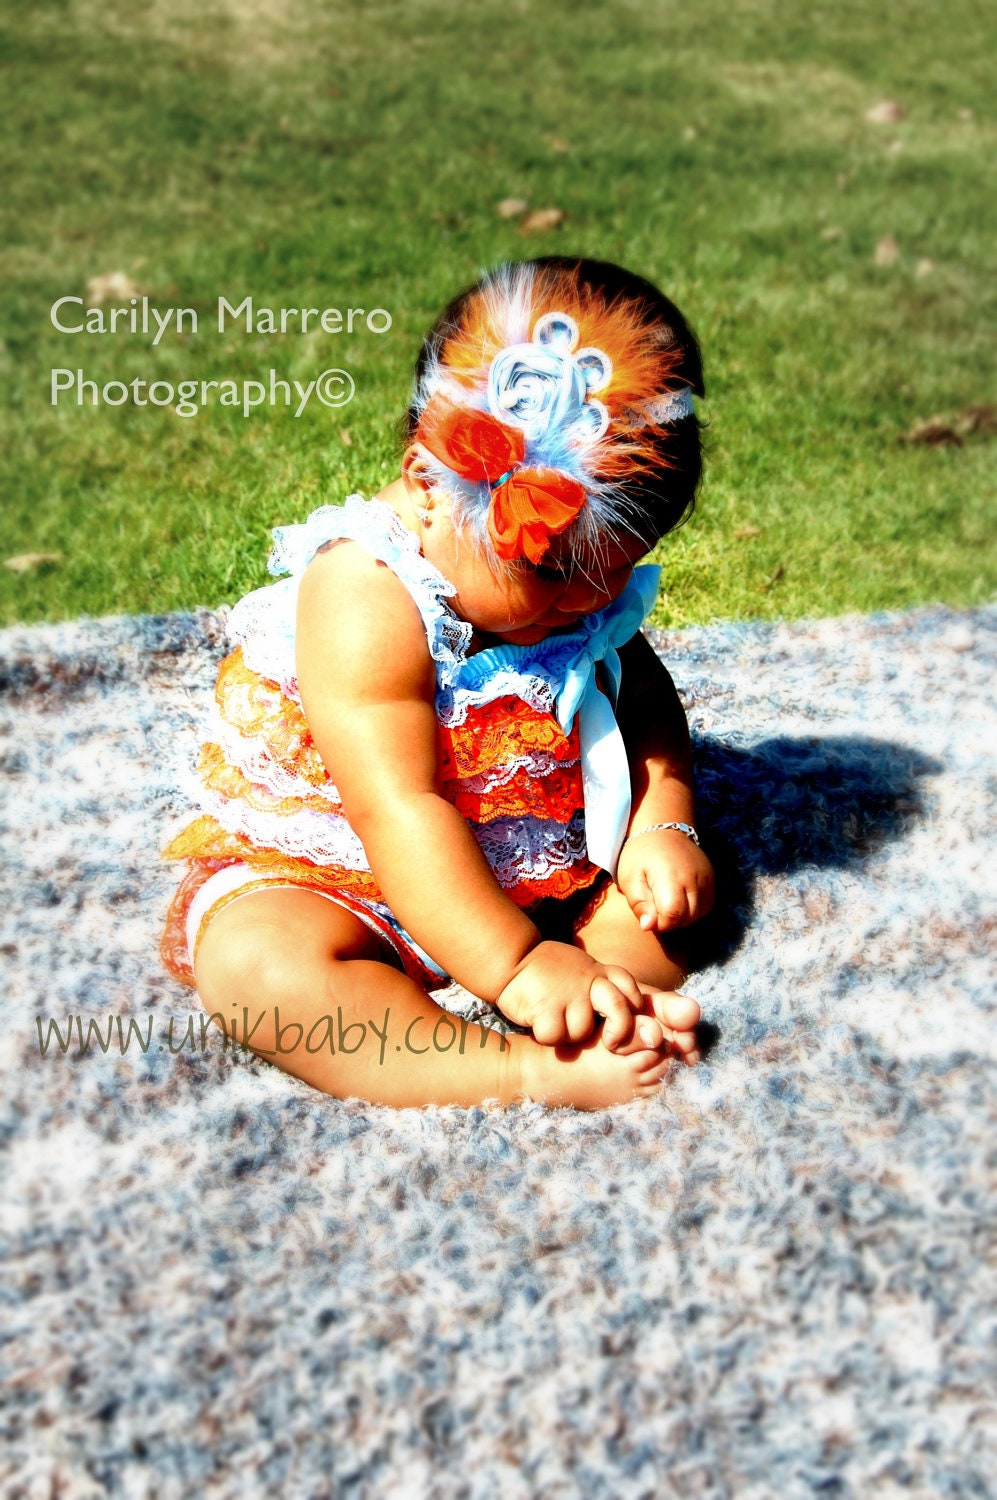 Vintage Inspired Orange & Blue Petti Lace Romper with Shoulder Straps  Ready to SHIP - Unikbaby